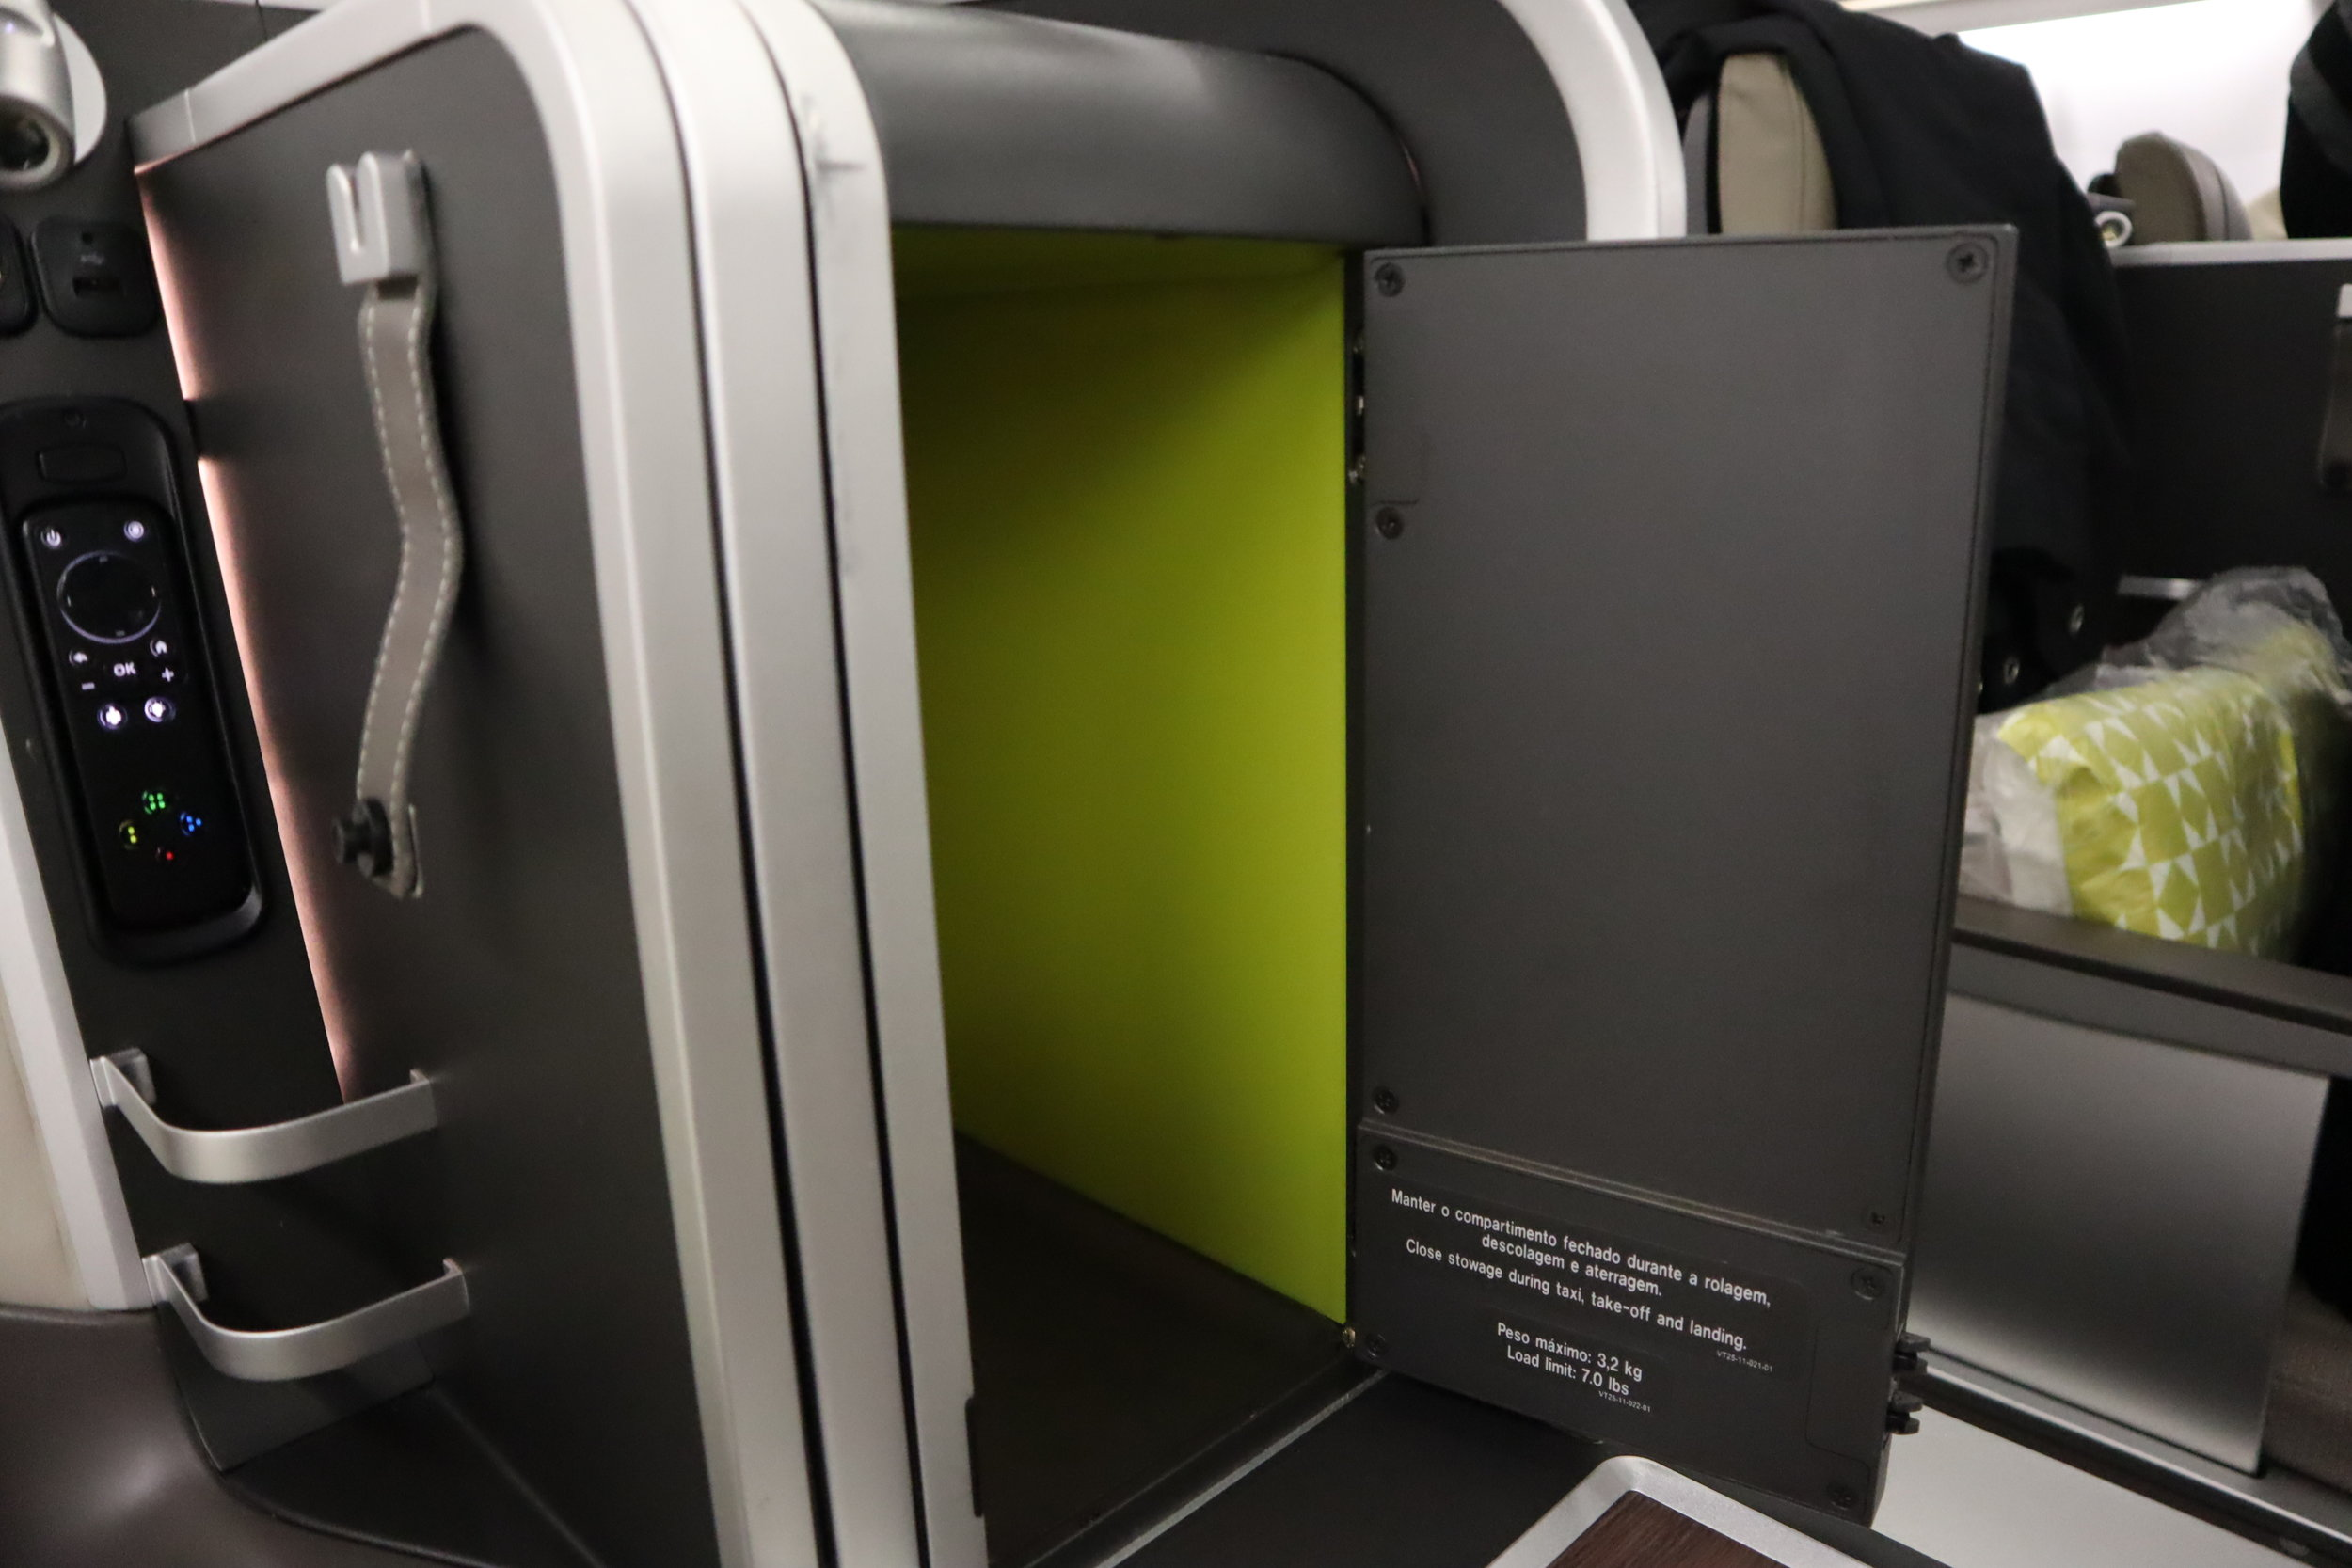 TAP Air Portugal business class – Storage compartment